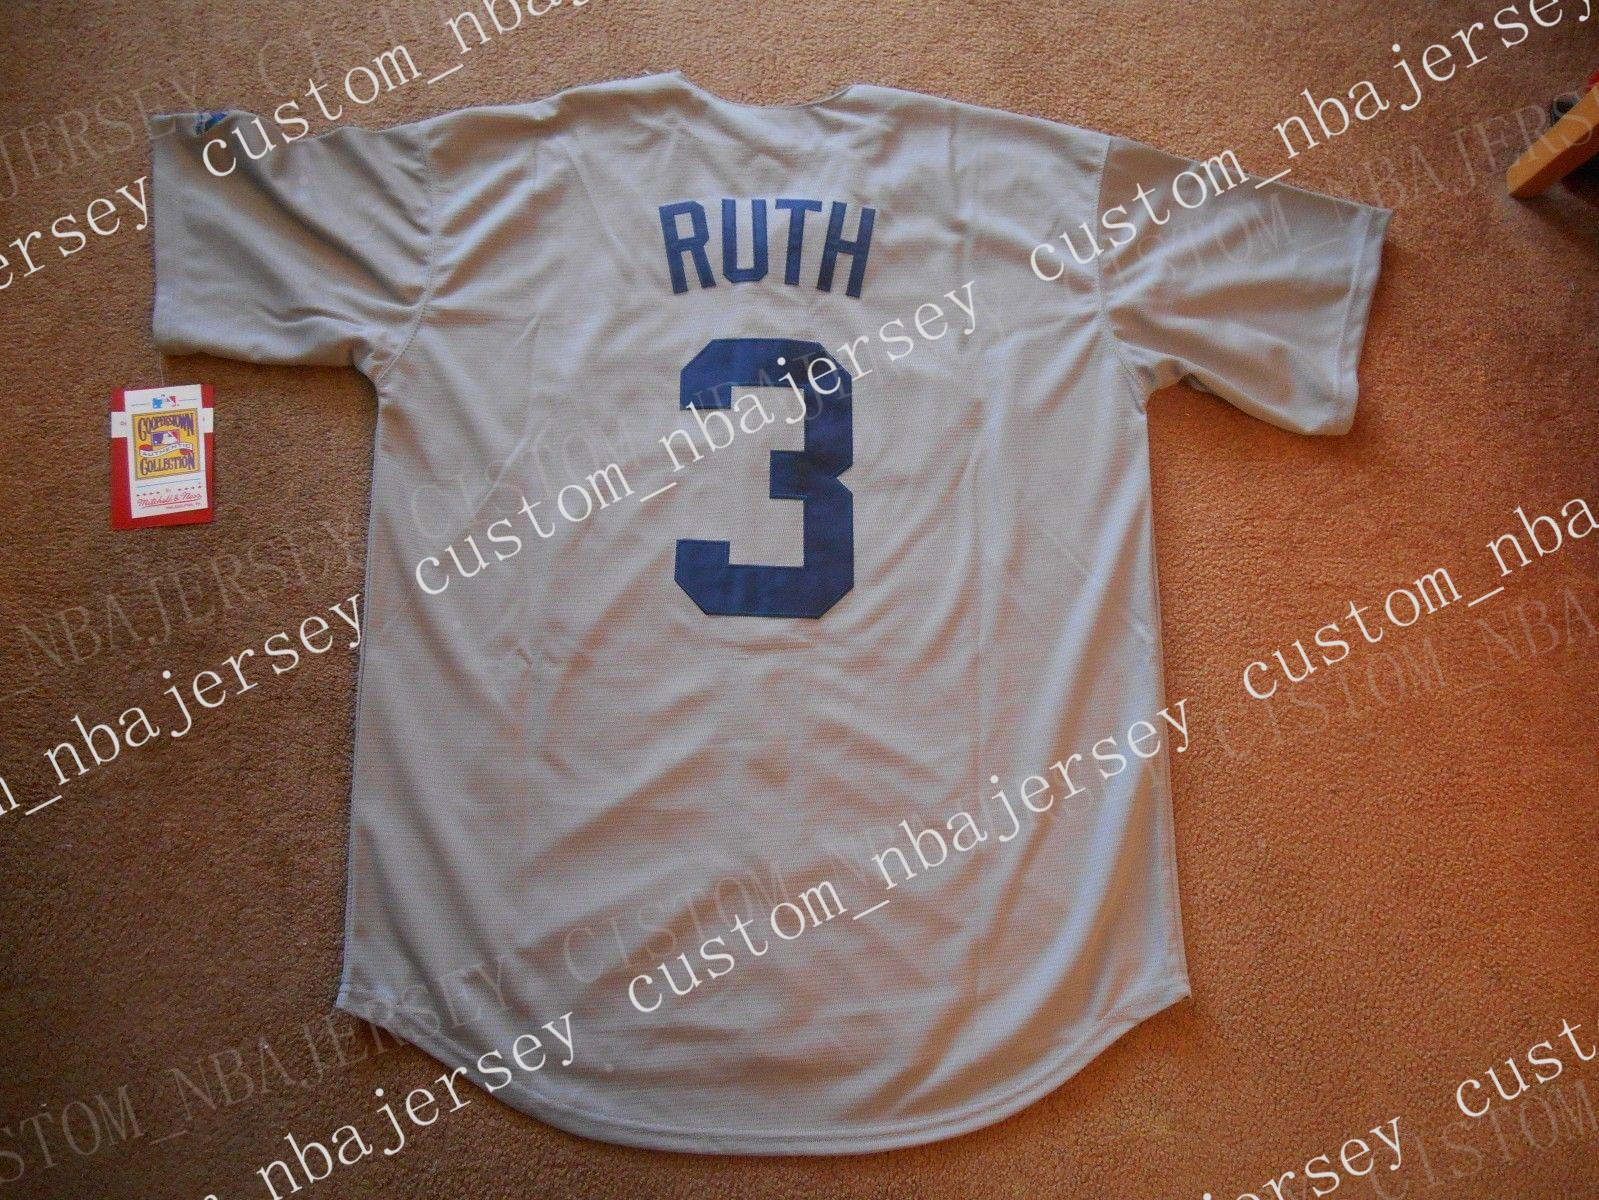 low priced 3f2c3 b3ed5 Cheap custom Babe Ruth #3 Baseball Jersey Stitched Customize any name  number MEN WOMEN YOUTH Jerseys